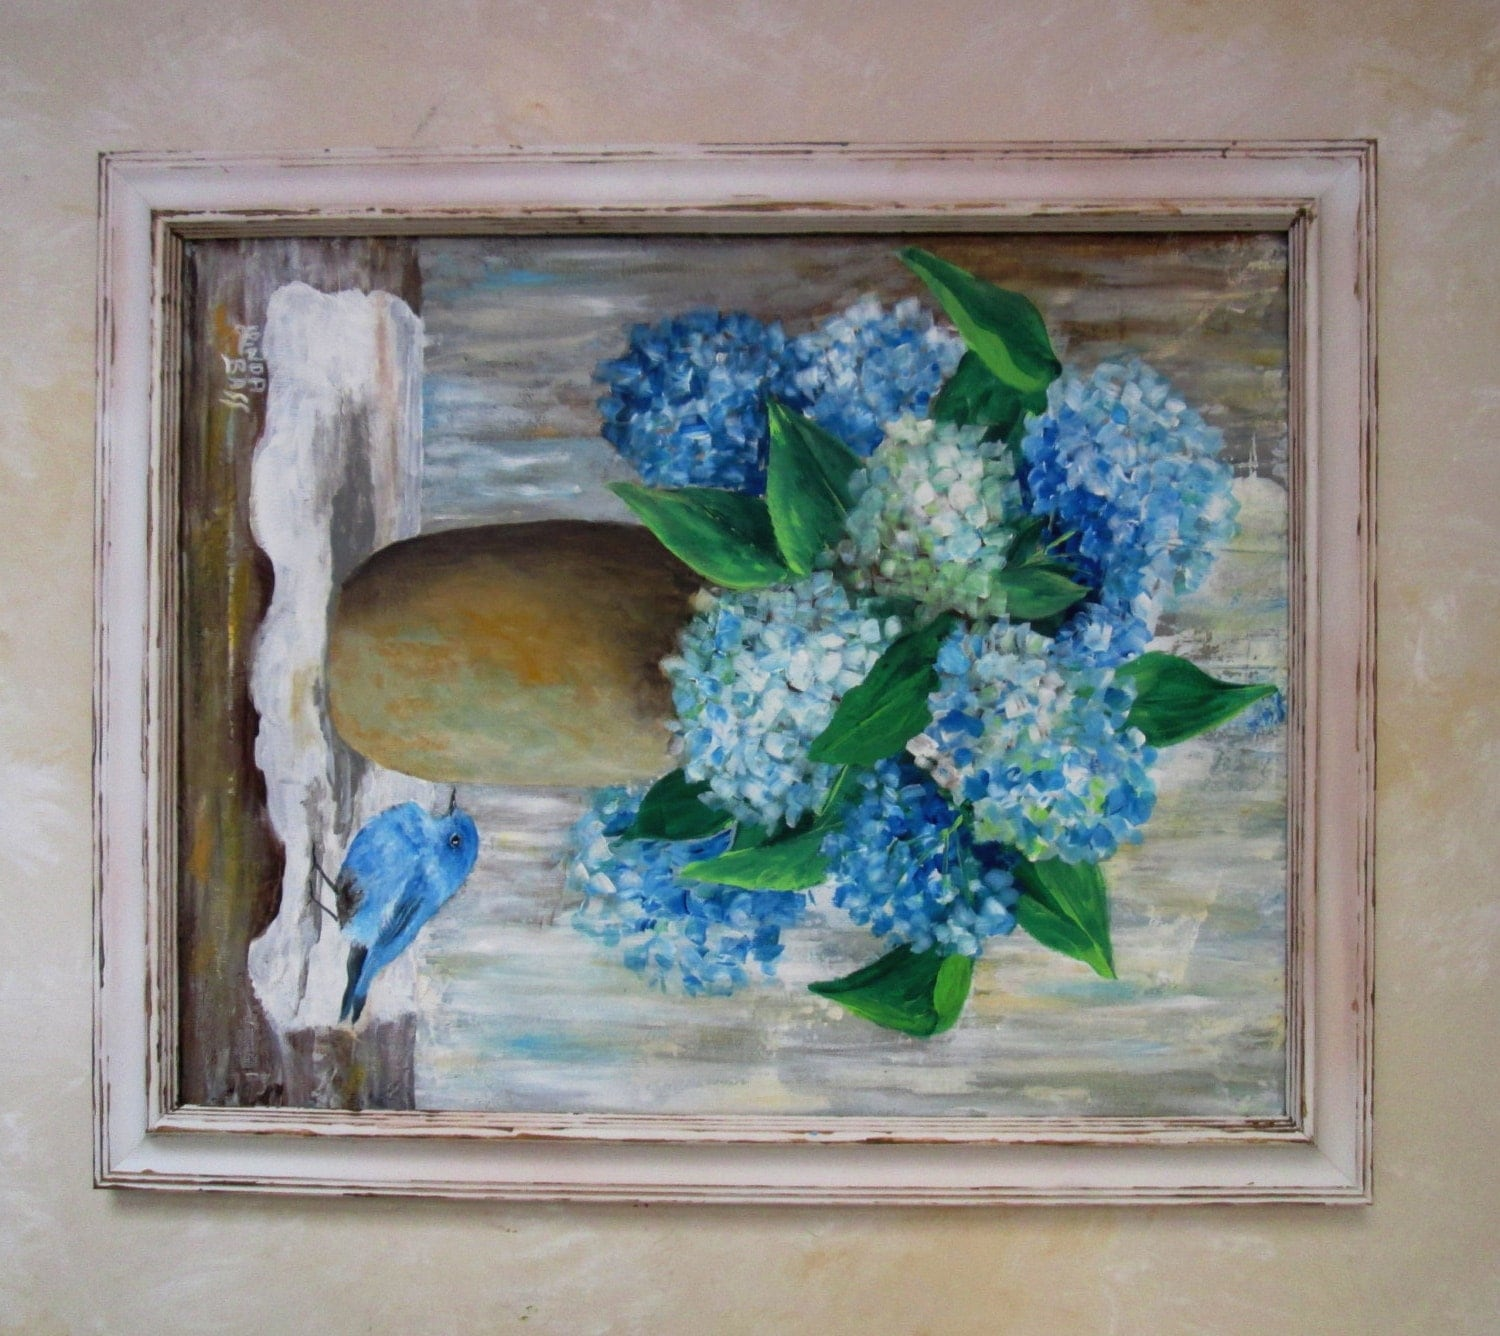 original hydrangea painting 16x20 canvas frame included. Black Bedroom Furniture Sets. Home Design Ideas